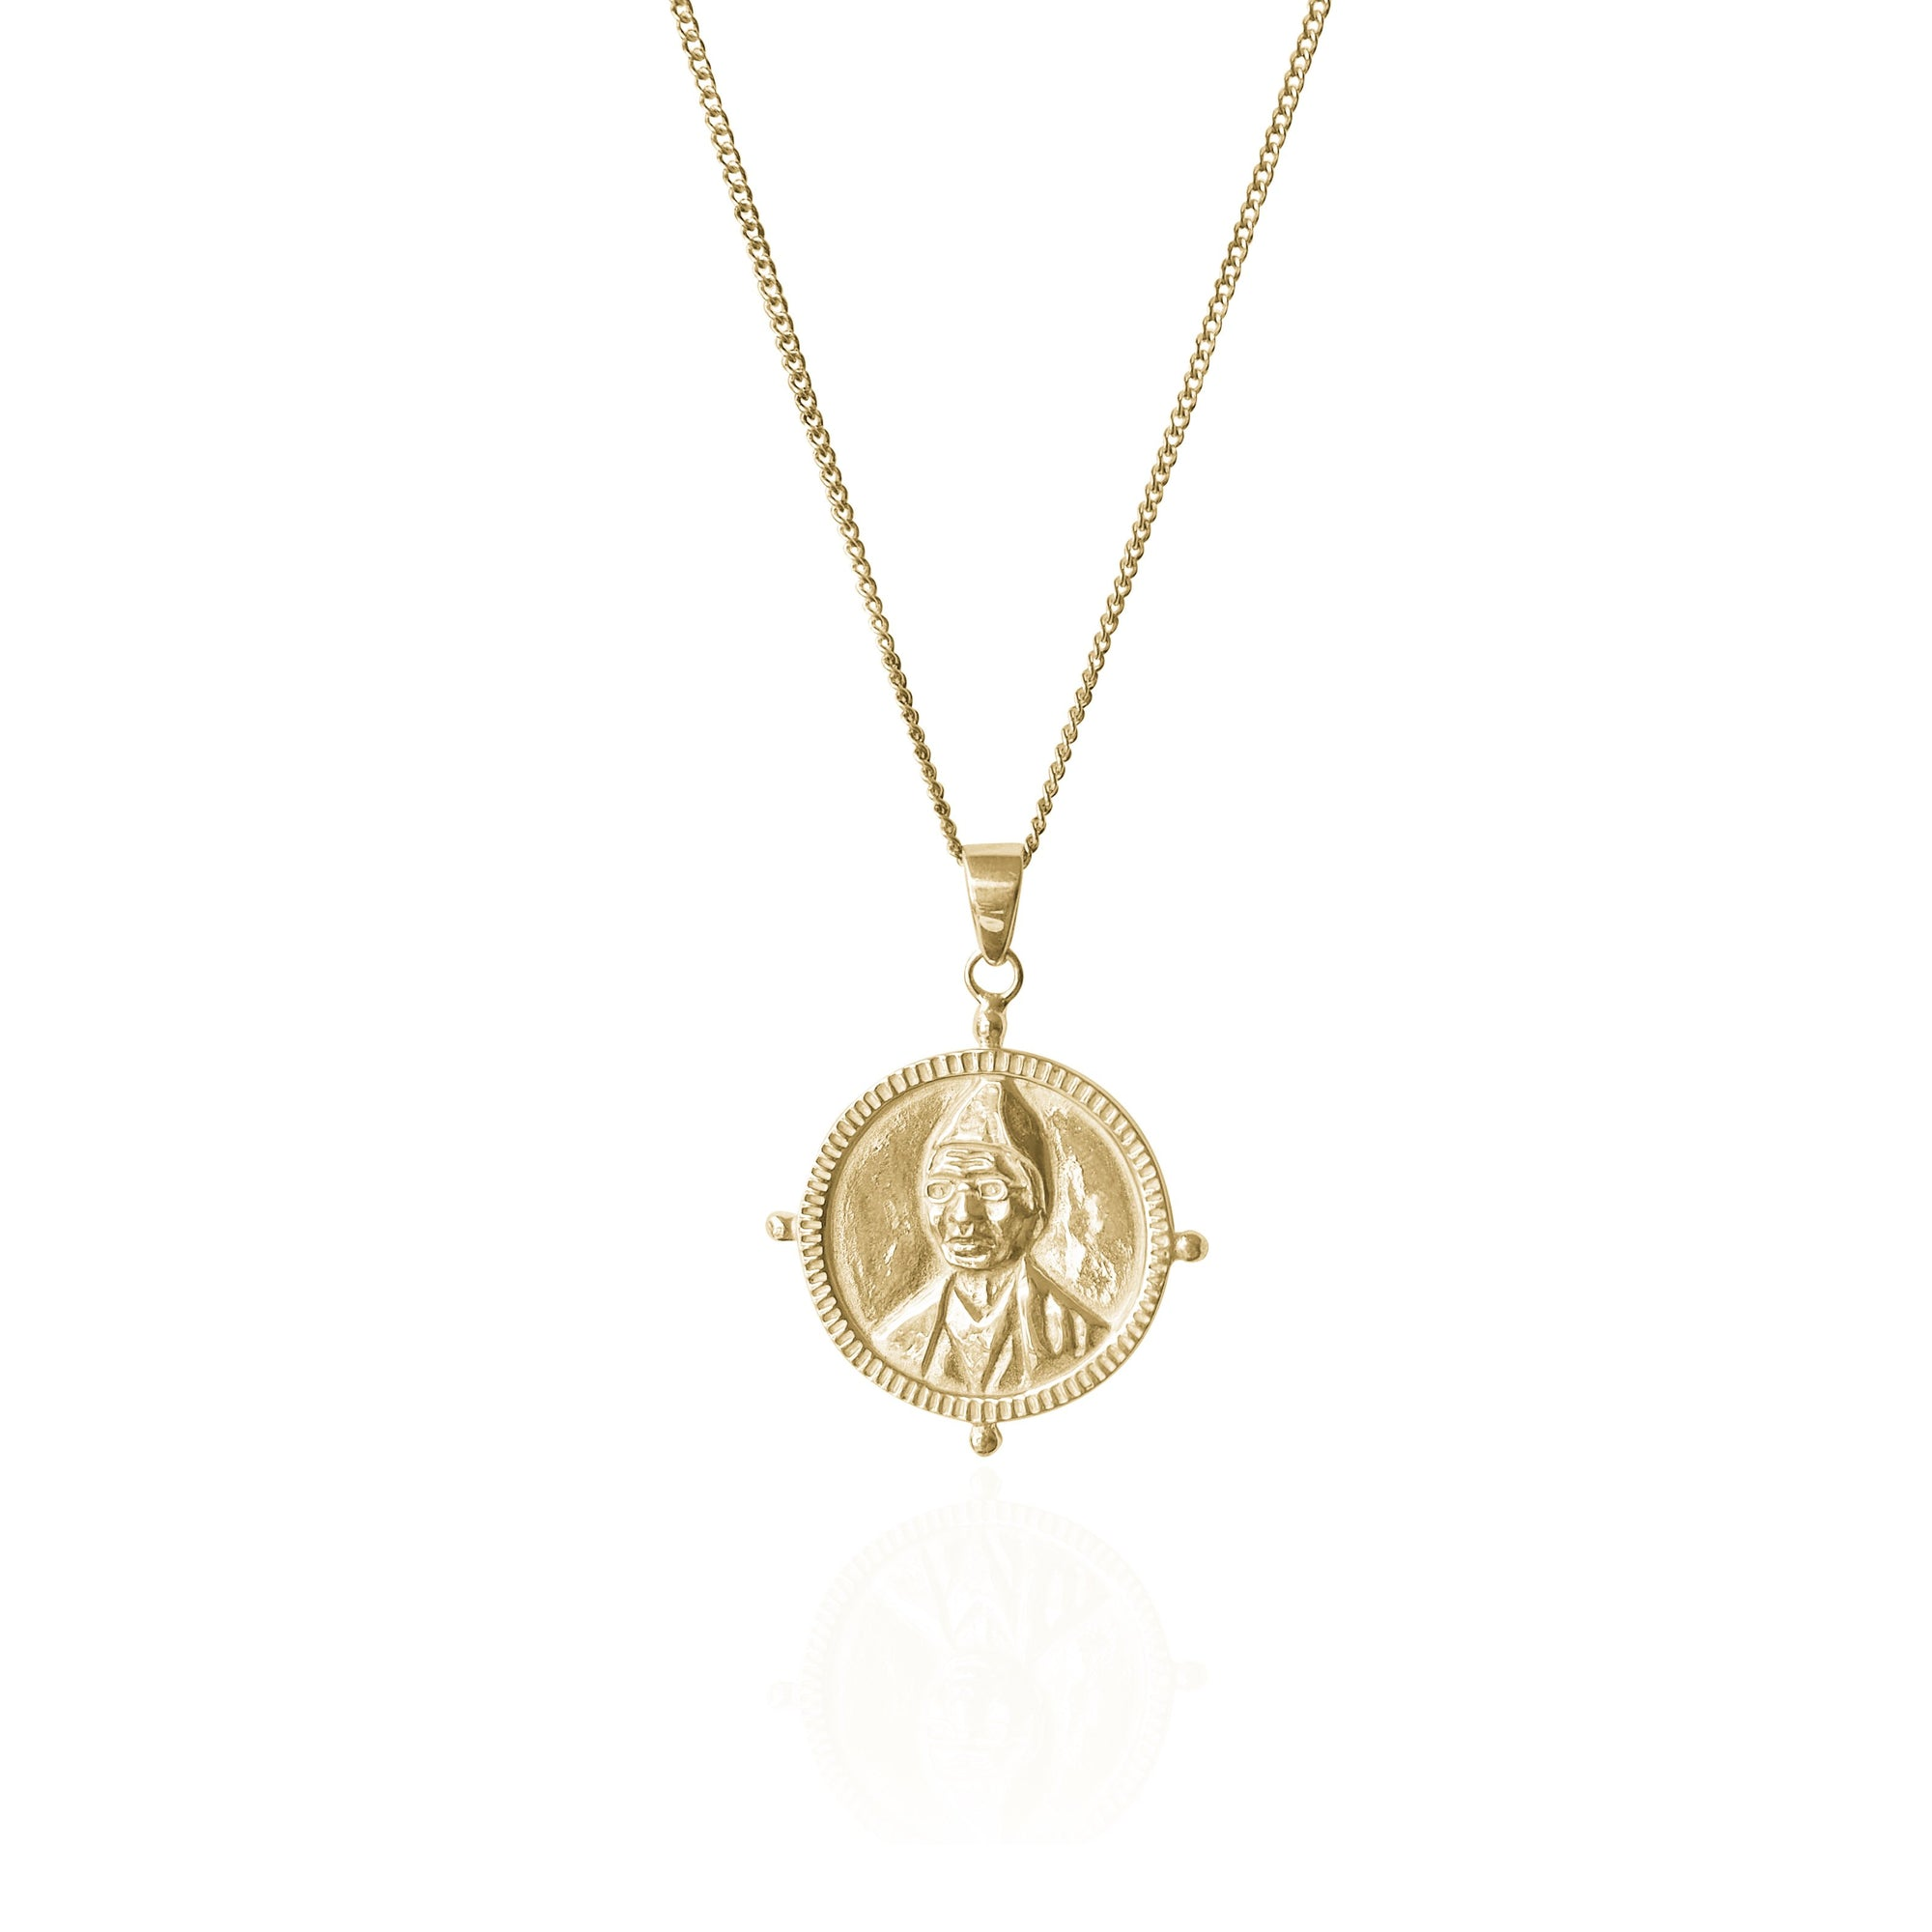 SOLID GOLD - SOJOURNER 'STRENGTH' NECKLACE